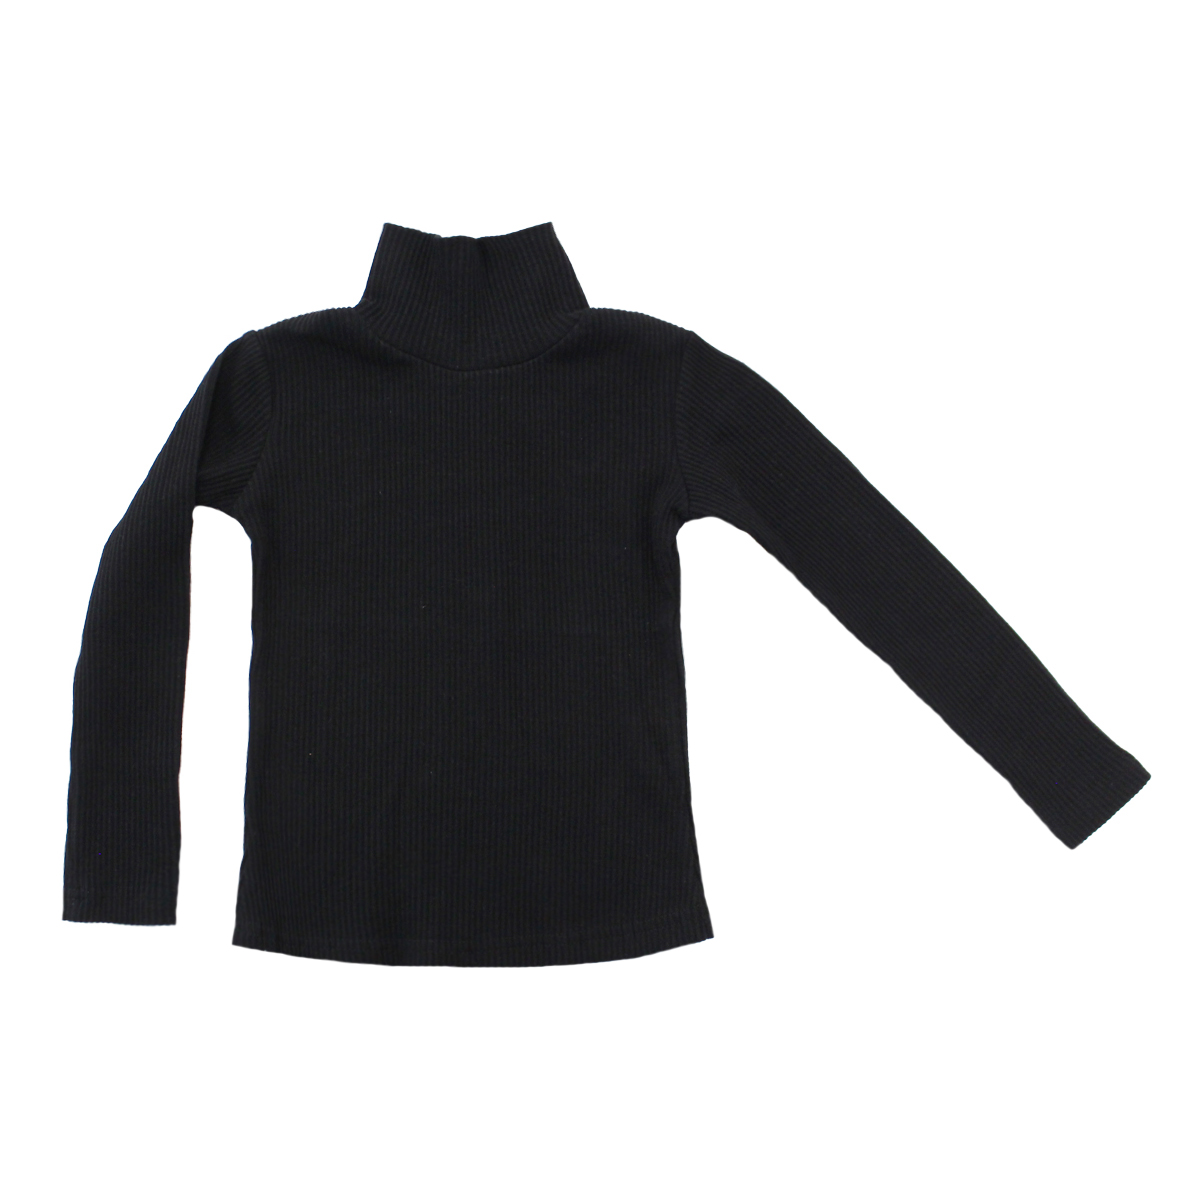 Crew Rib Turtleneck in Black